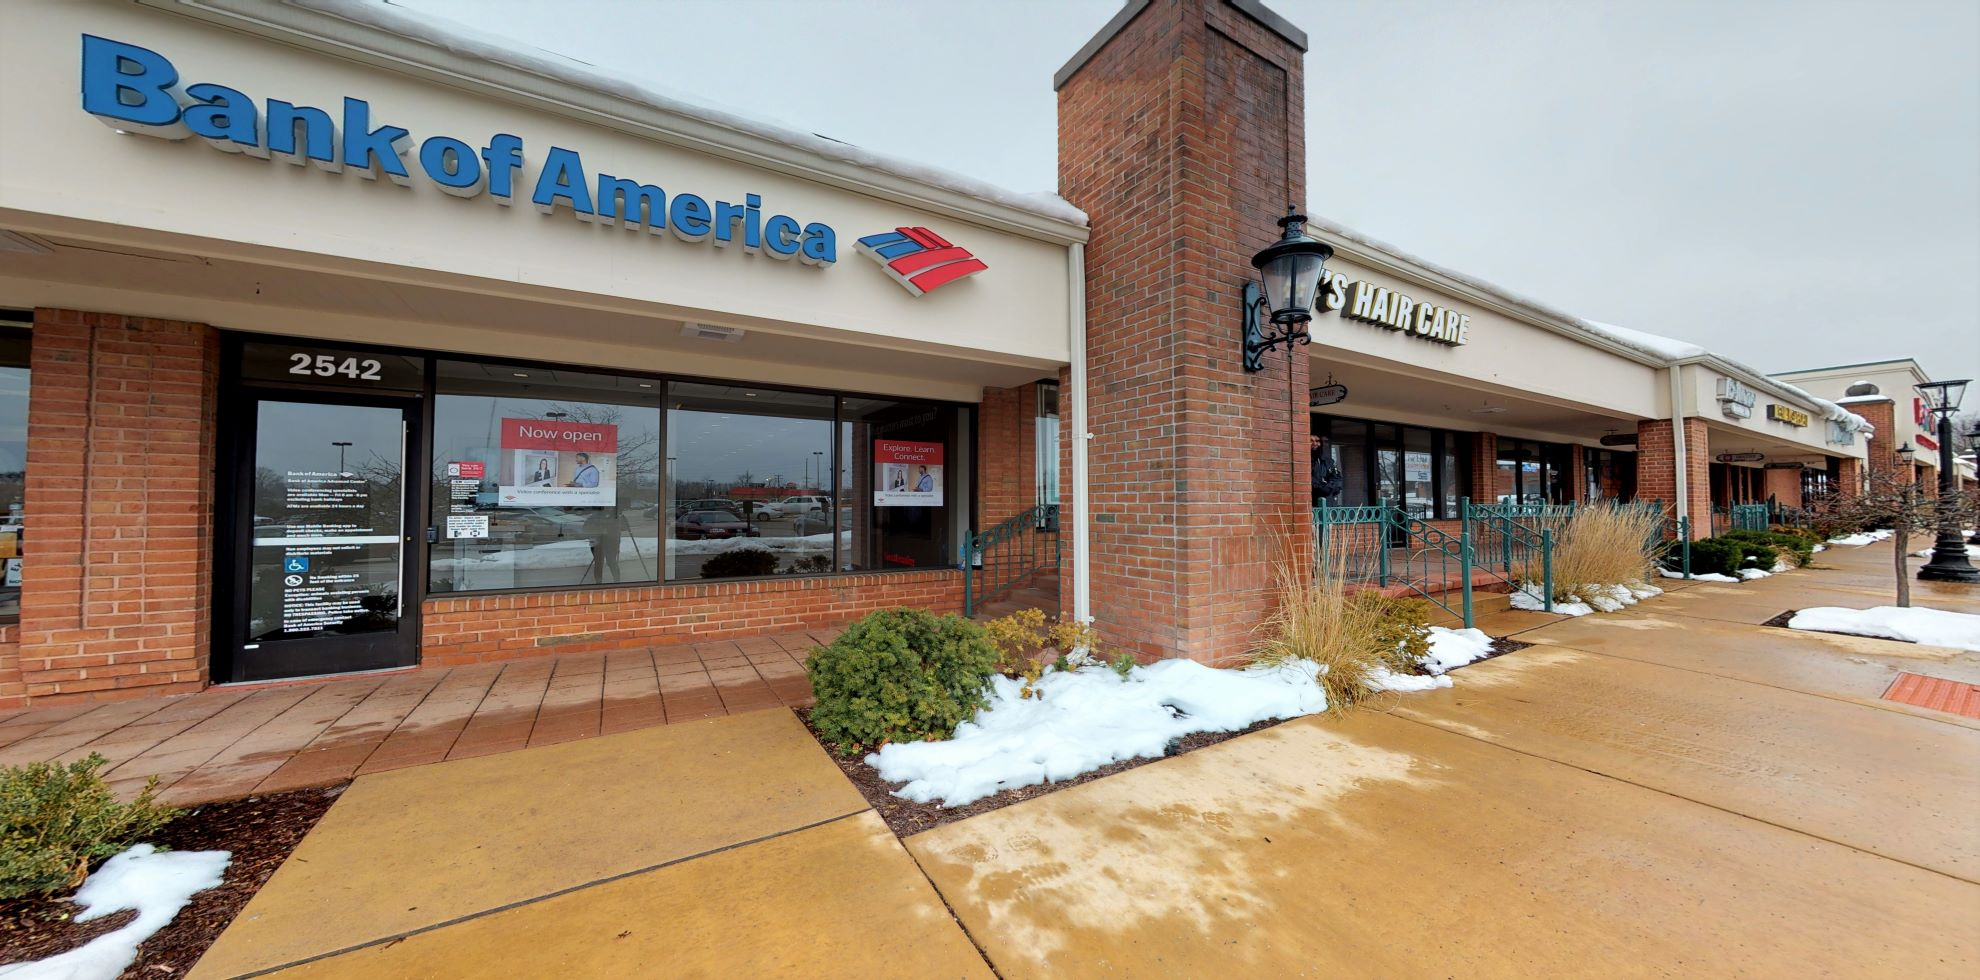 Bank of America Advanced Center with walk-up ATM   2542 Lemay Ferry Rd, Saint Louis, MO 63125